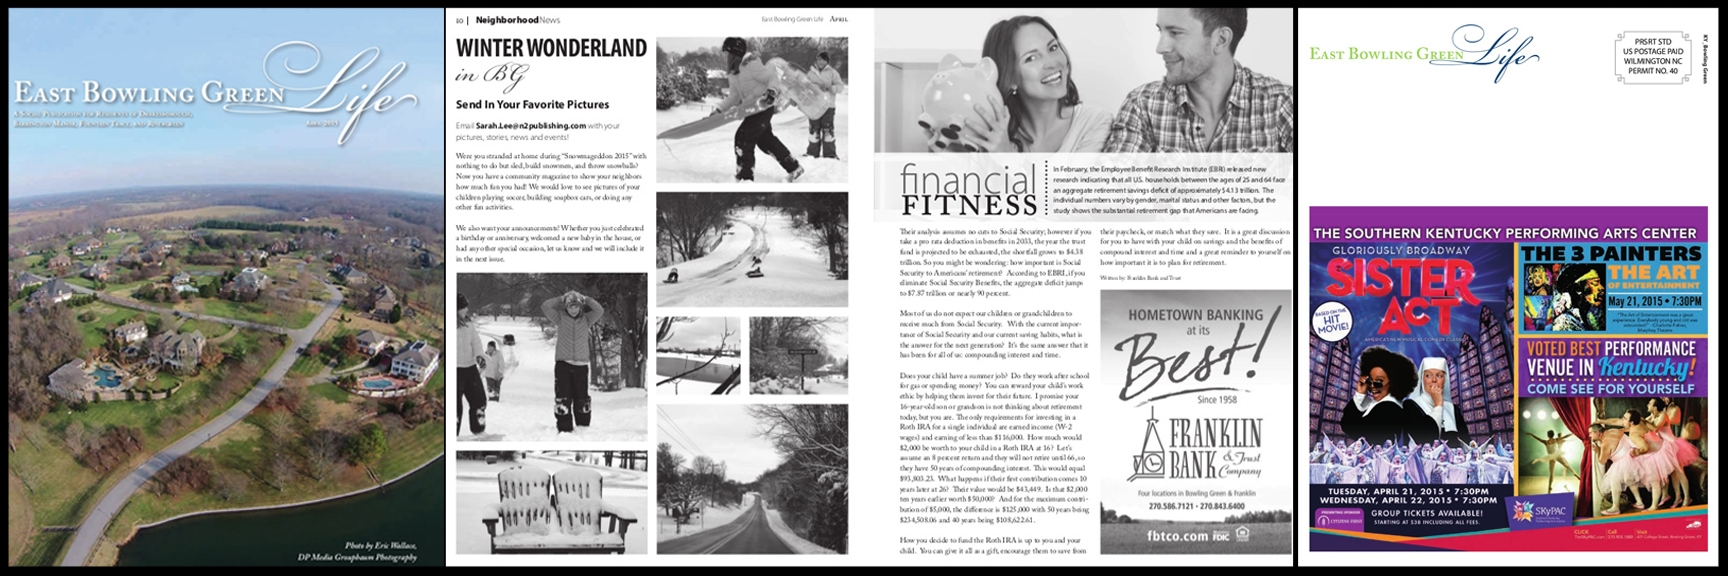 East Bowling Green Life: April Issue (Layout, Content, and Graphics)